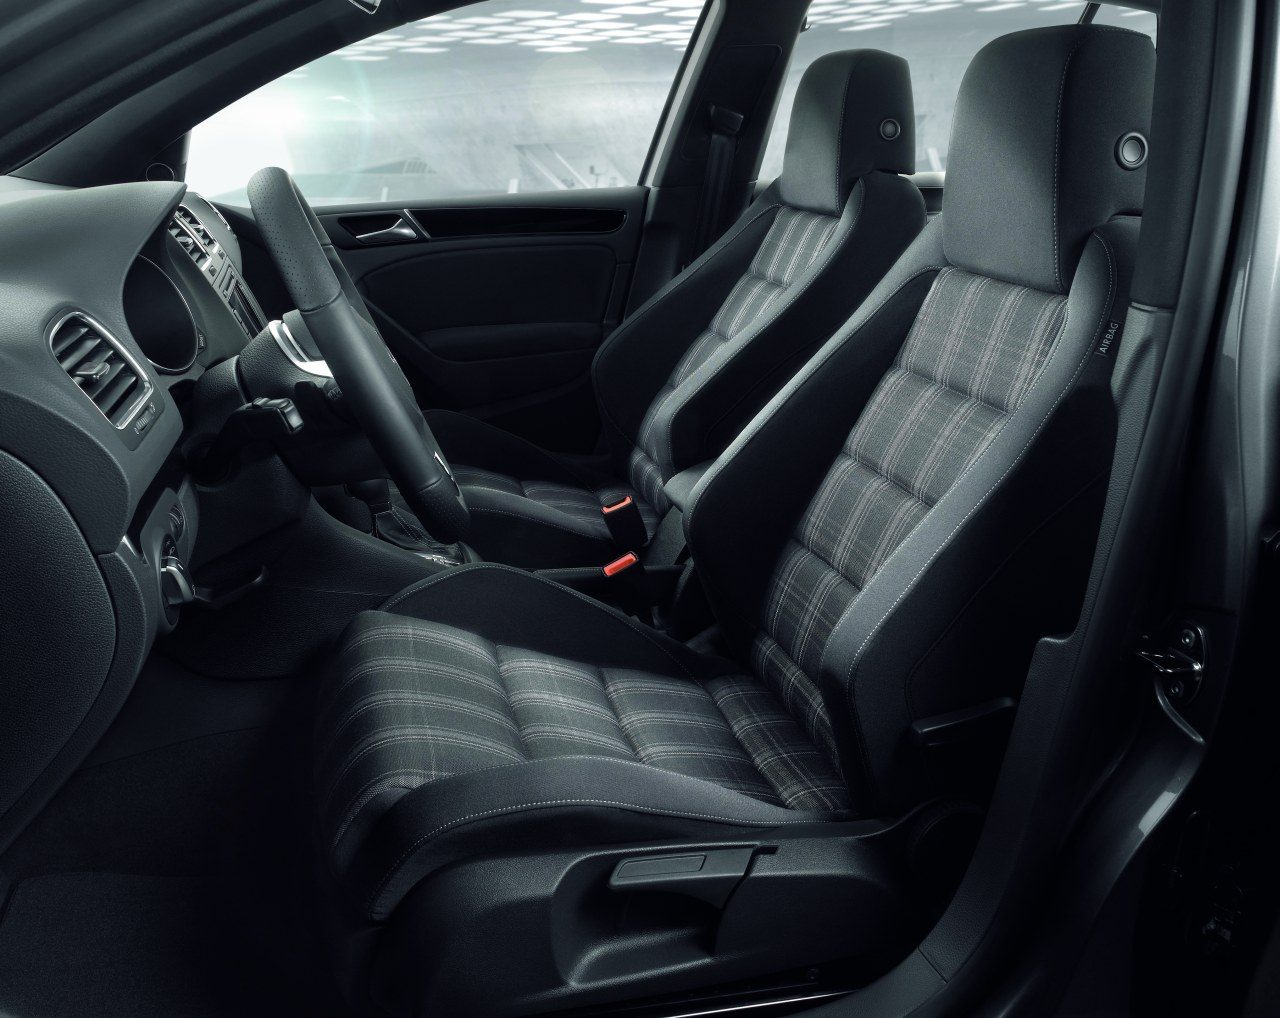 foto volkswagen golf vi gtd volkswagen golf vi gtd 07. Black Bedroom Furniture Sets. Home Design Ideas